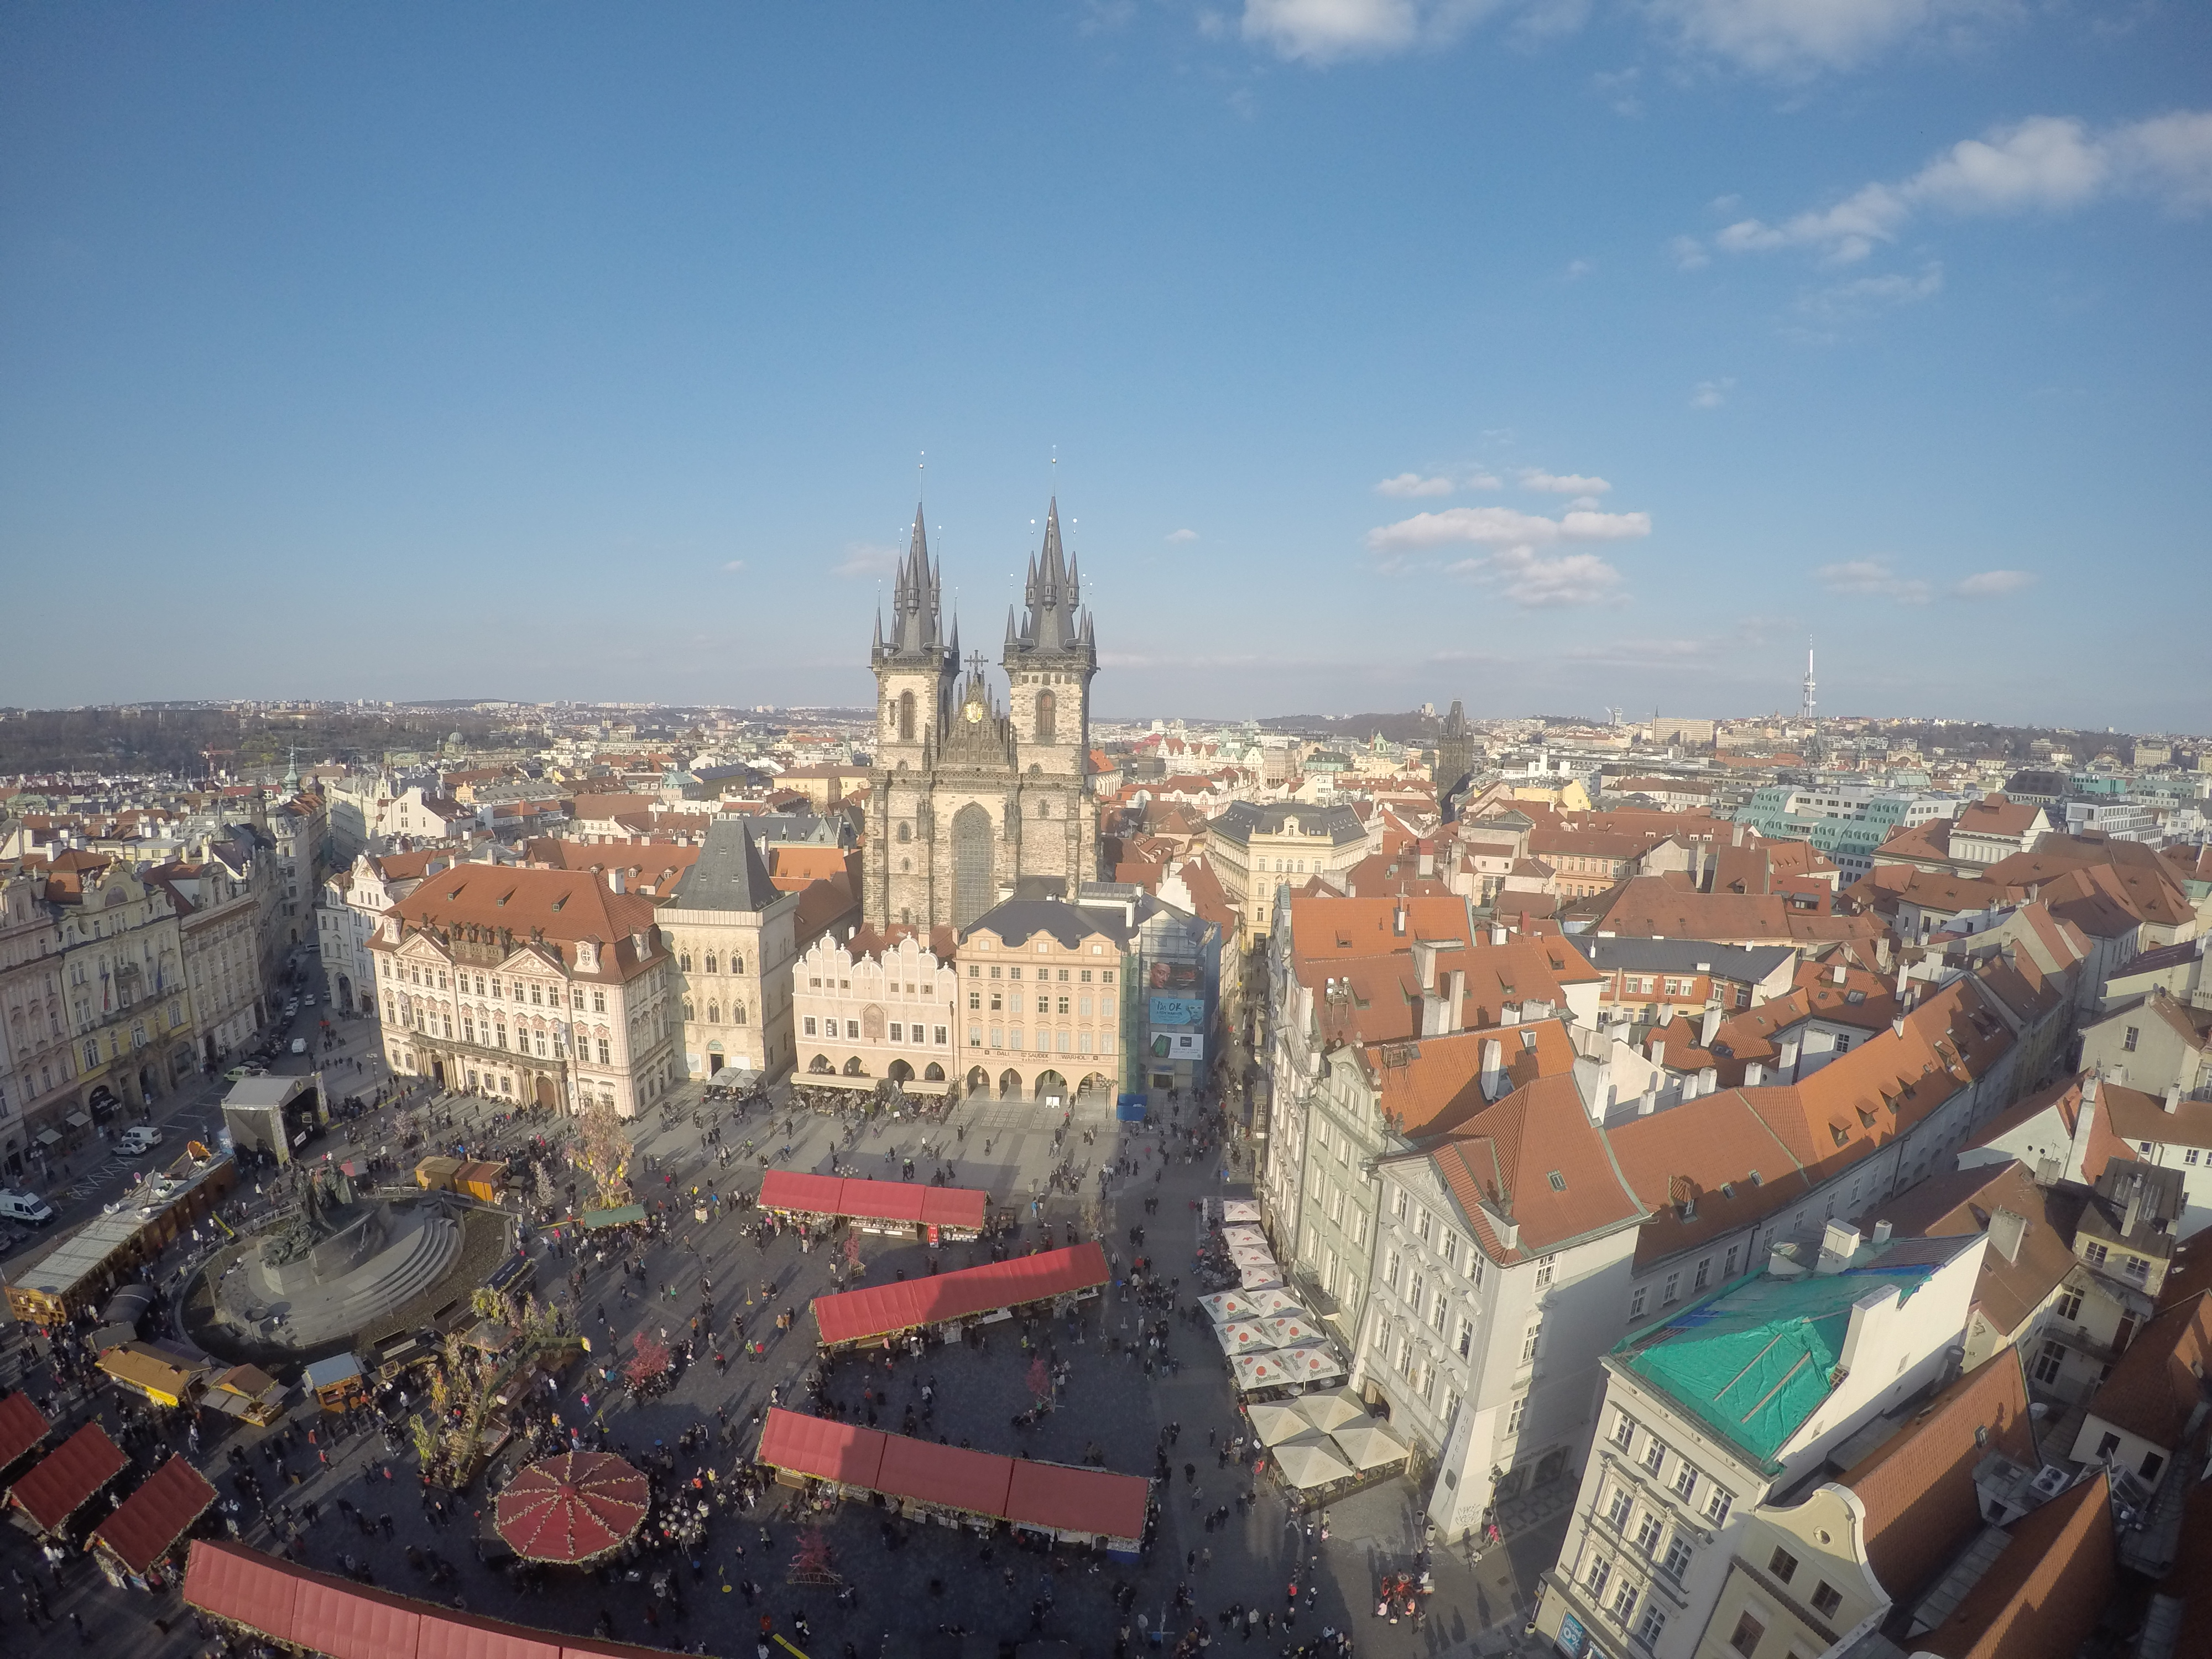 Czech out this view from the top of the Clock Tower